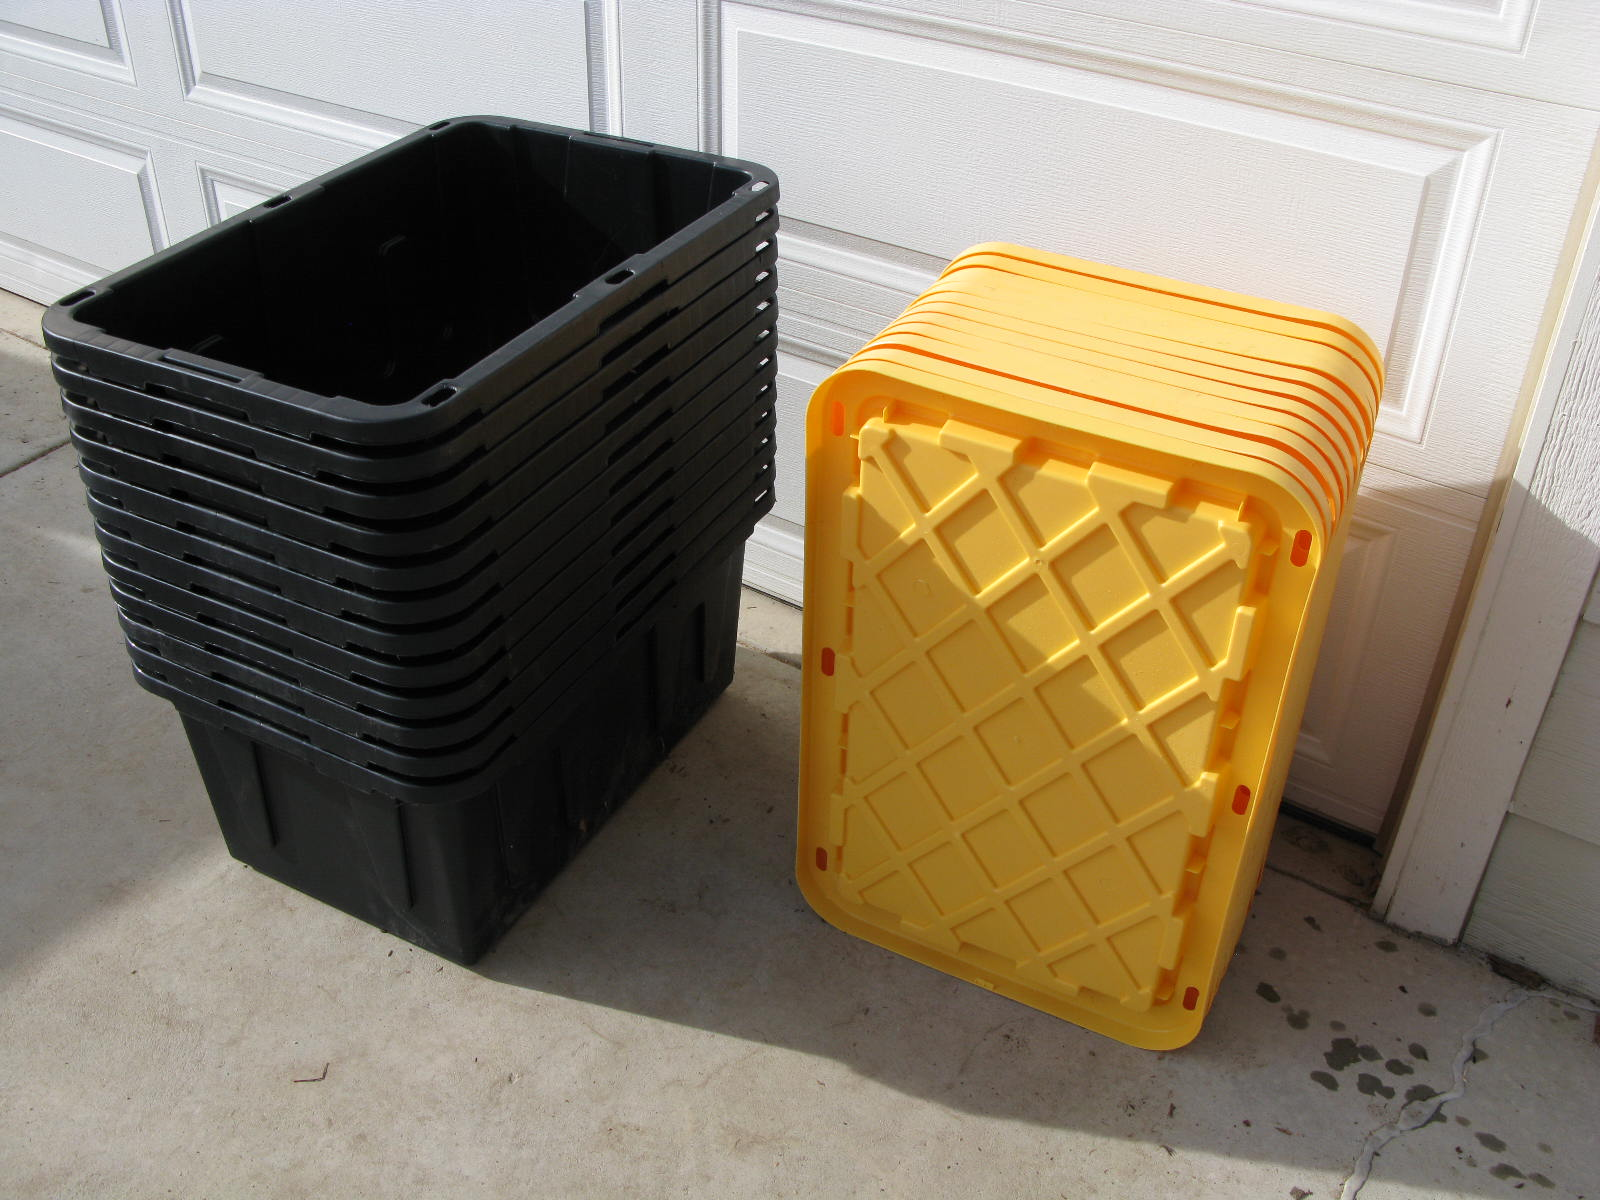 Best Kitchen Gallery: 12 Storage Containers of Home Storage Containers  on rachelxblog.com